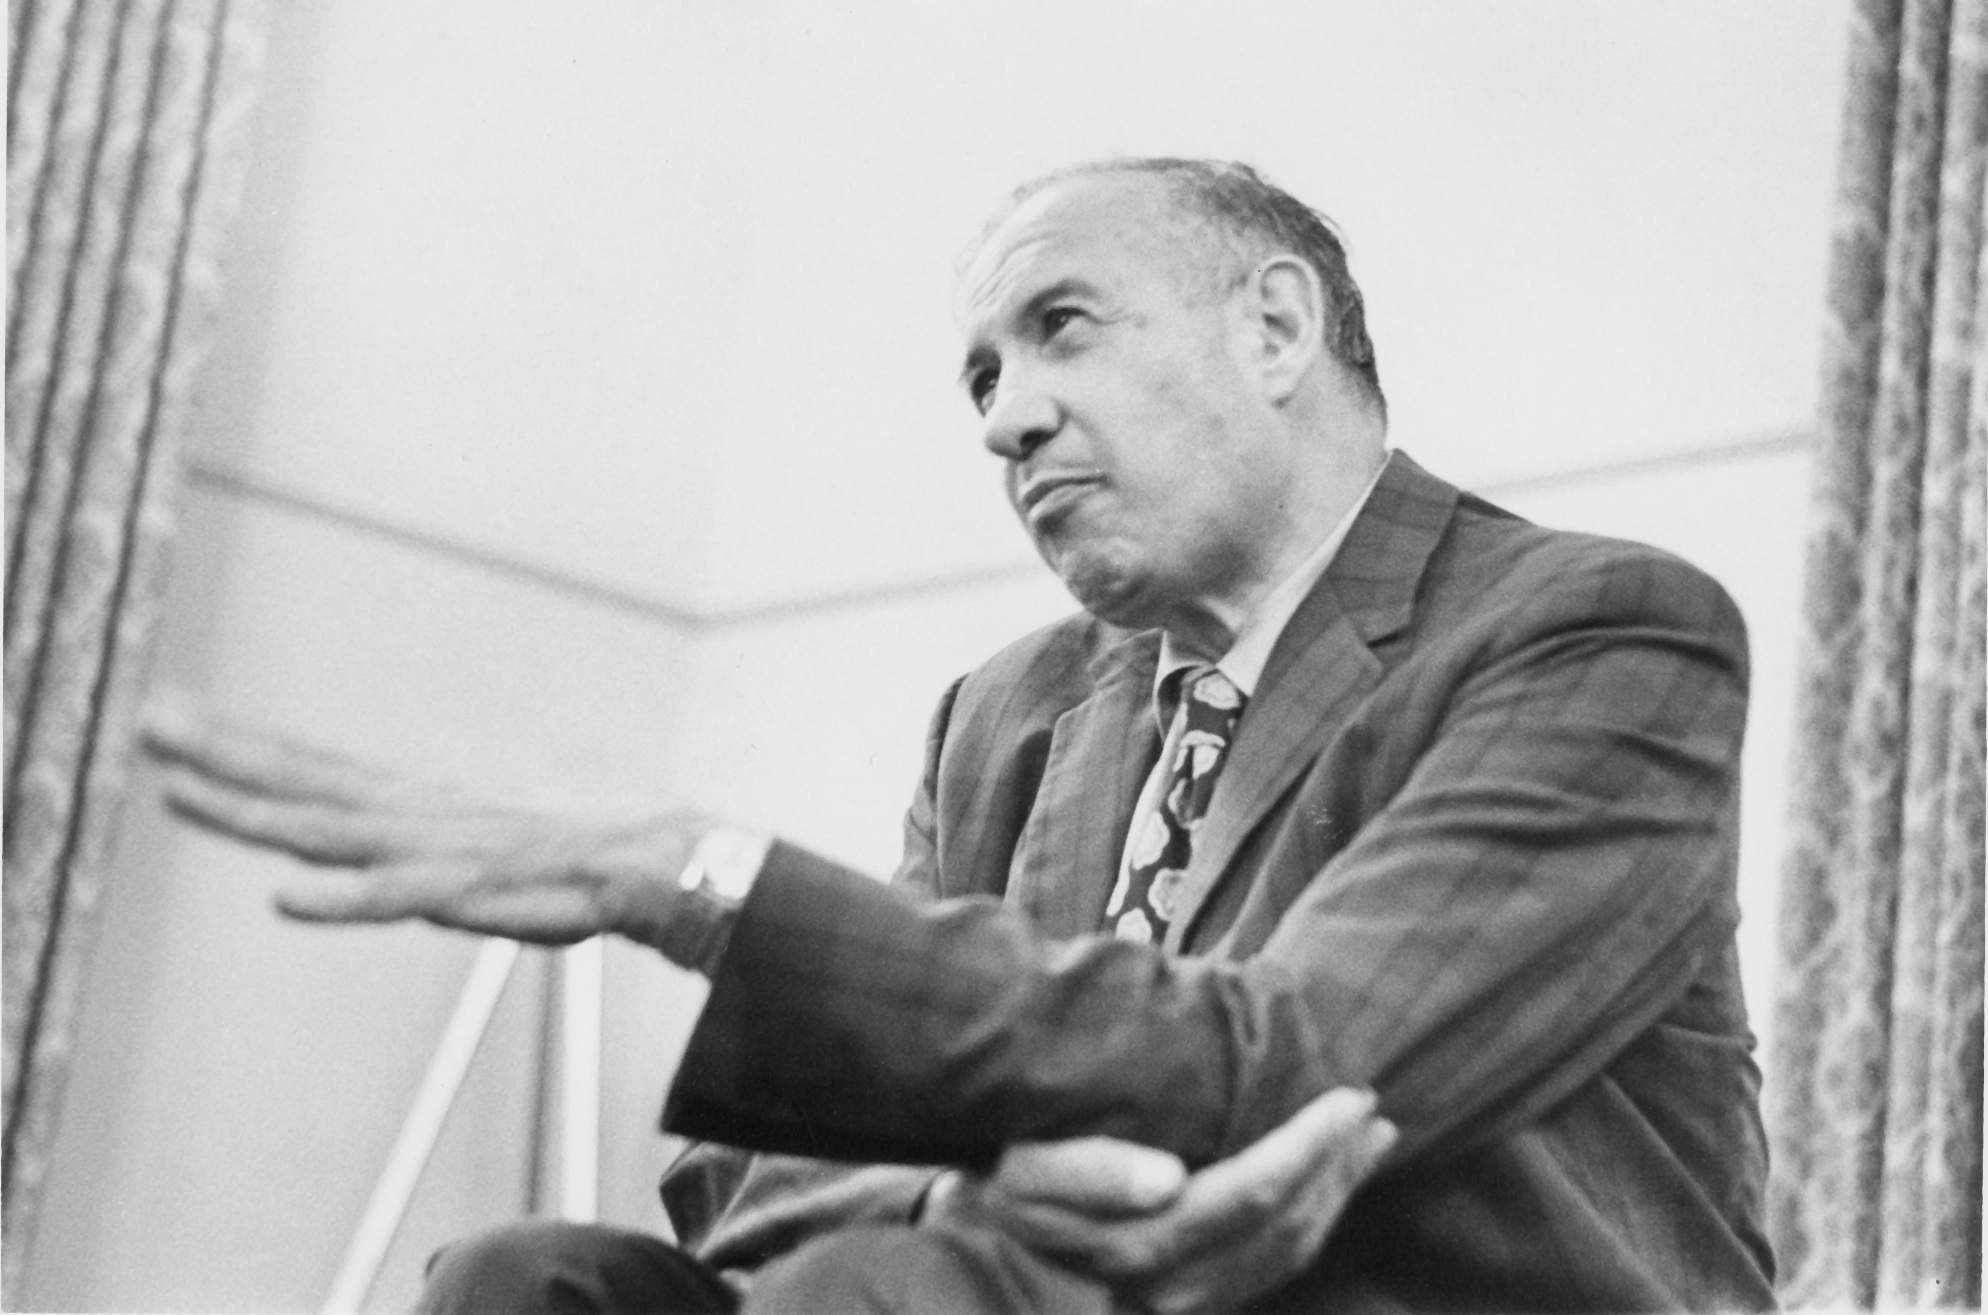 Peter Drucker (1909-2005), image courtesy of the Drucker Institute at Claremont Graduate University.